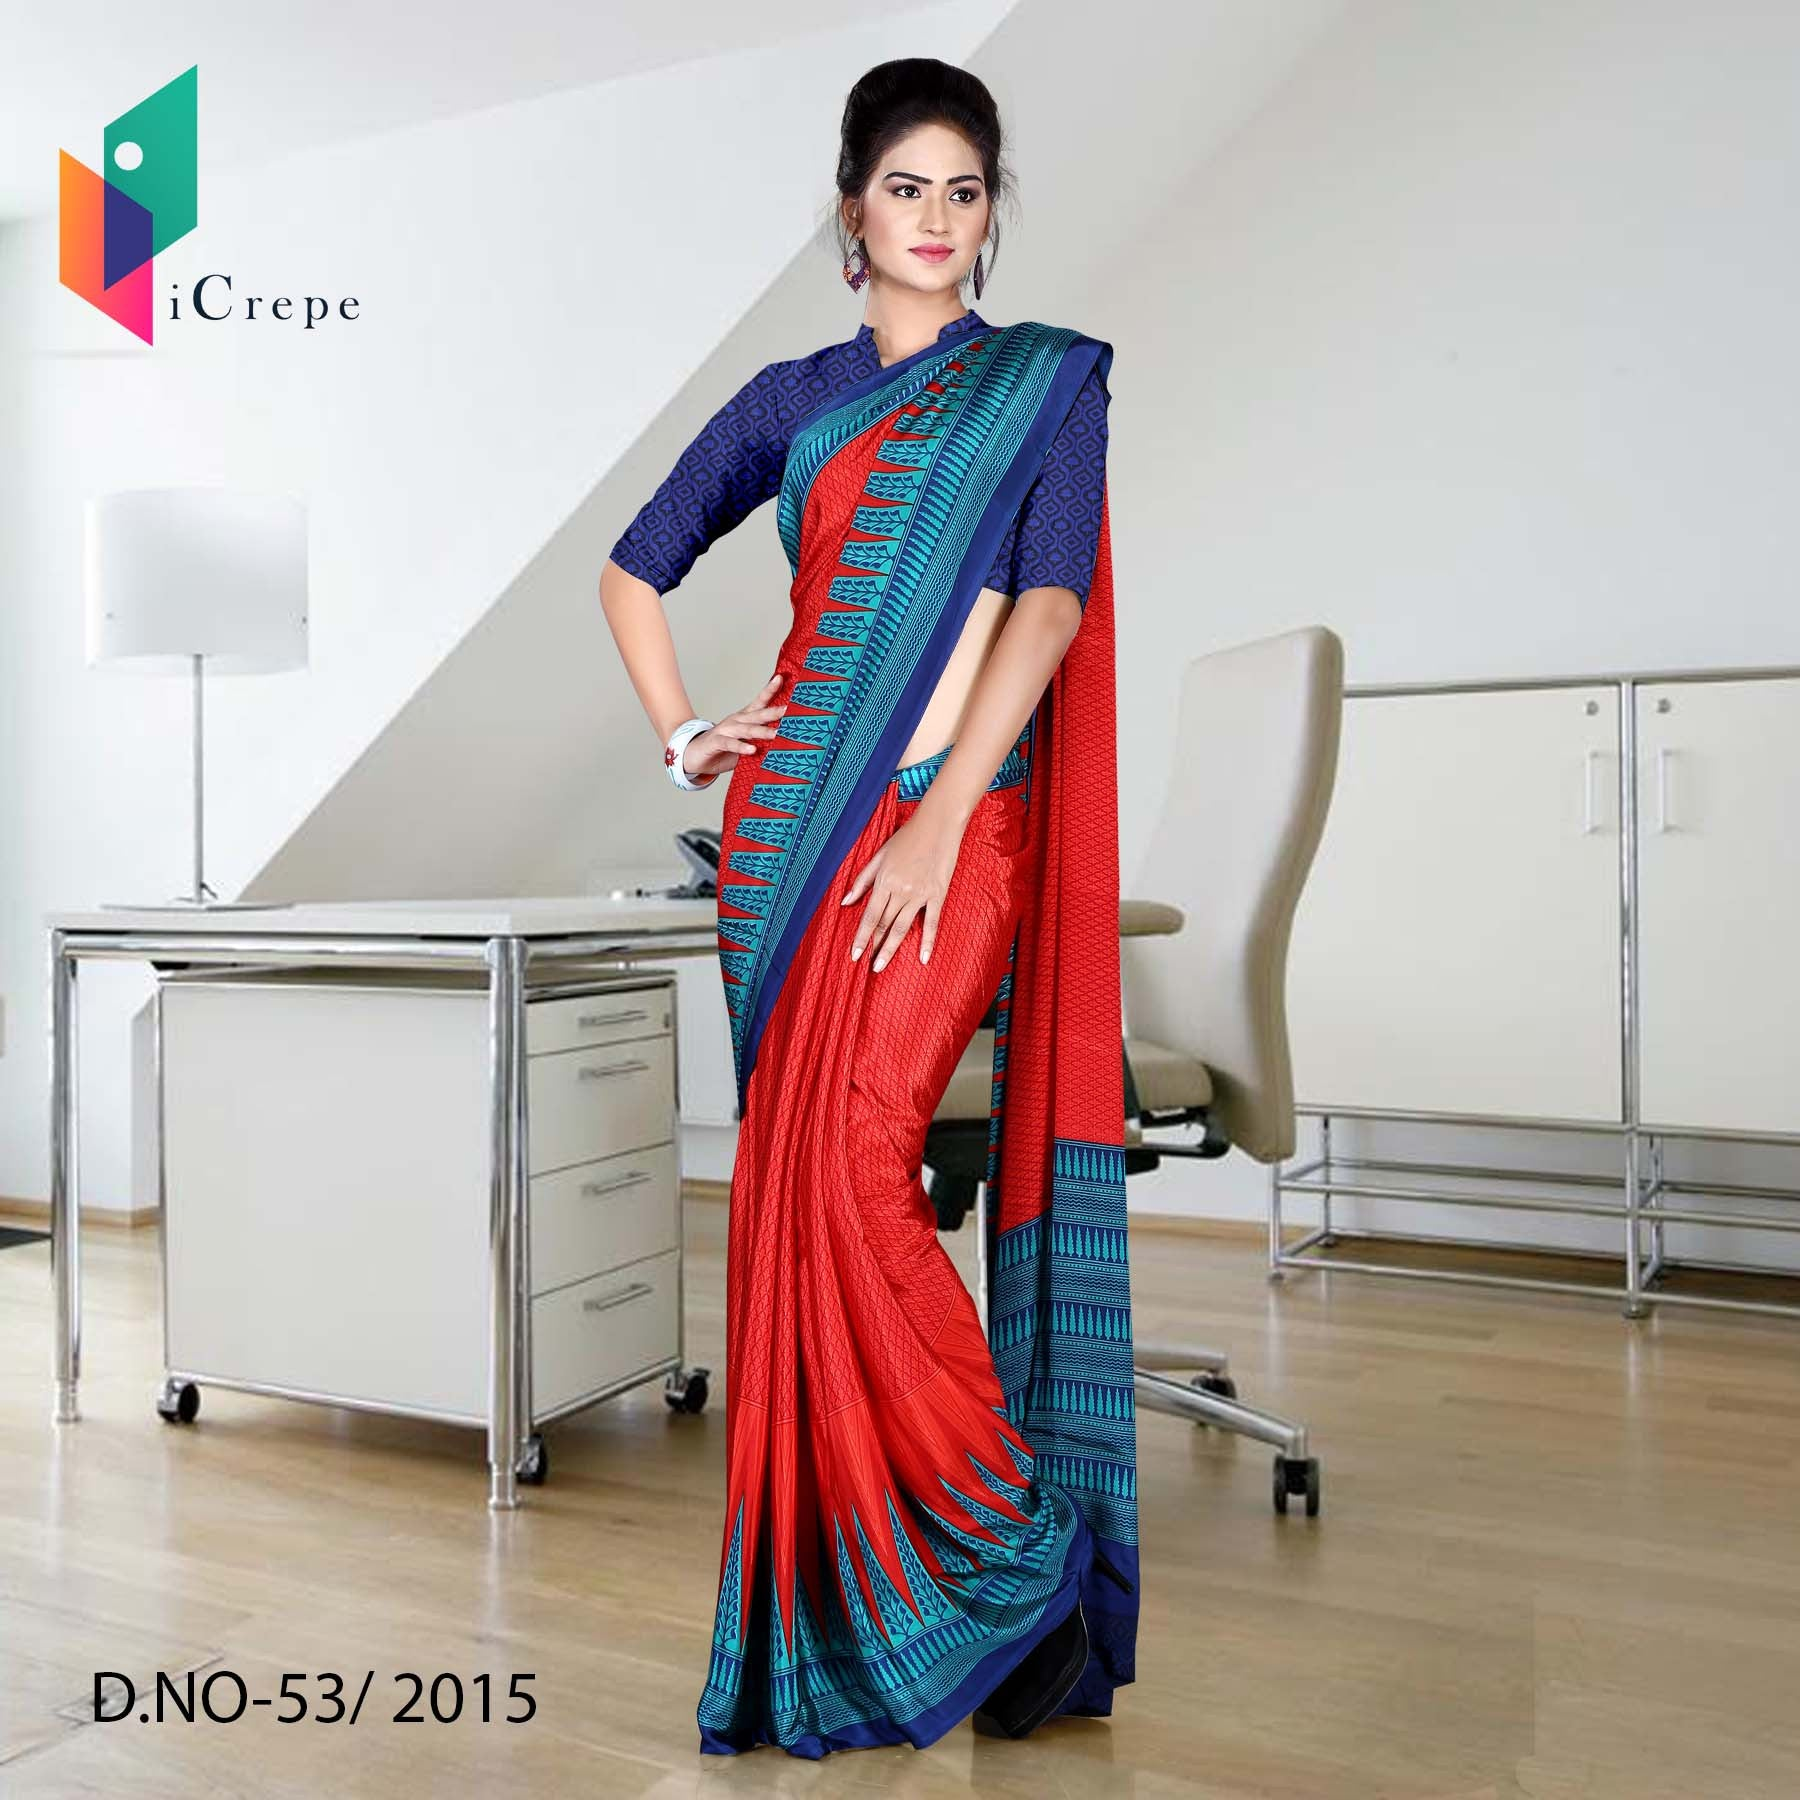 BROWN AND RED ITALIAN CREPE SILK AIR HOSTESS UNIFORM SAREE